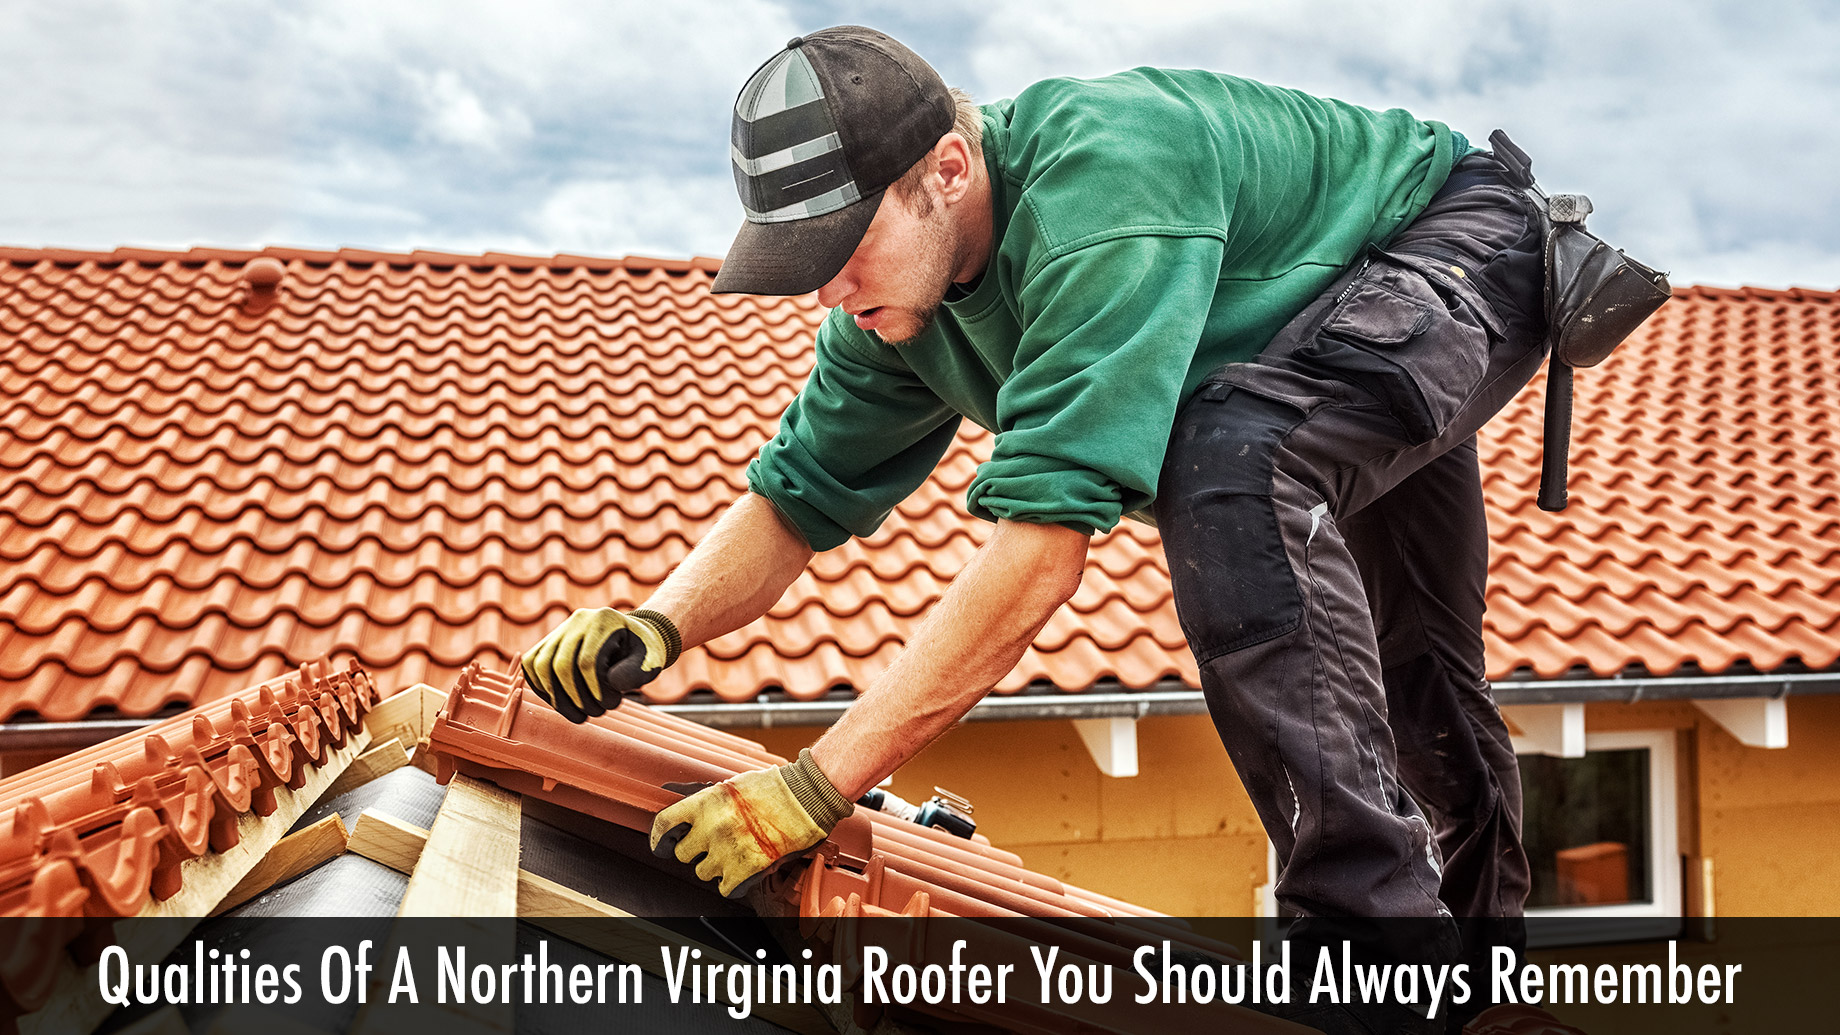 Qualities Of A Northern Virginia Roofer You Should Always Remember